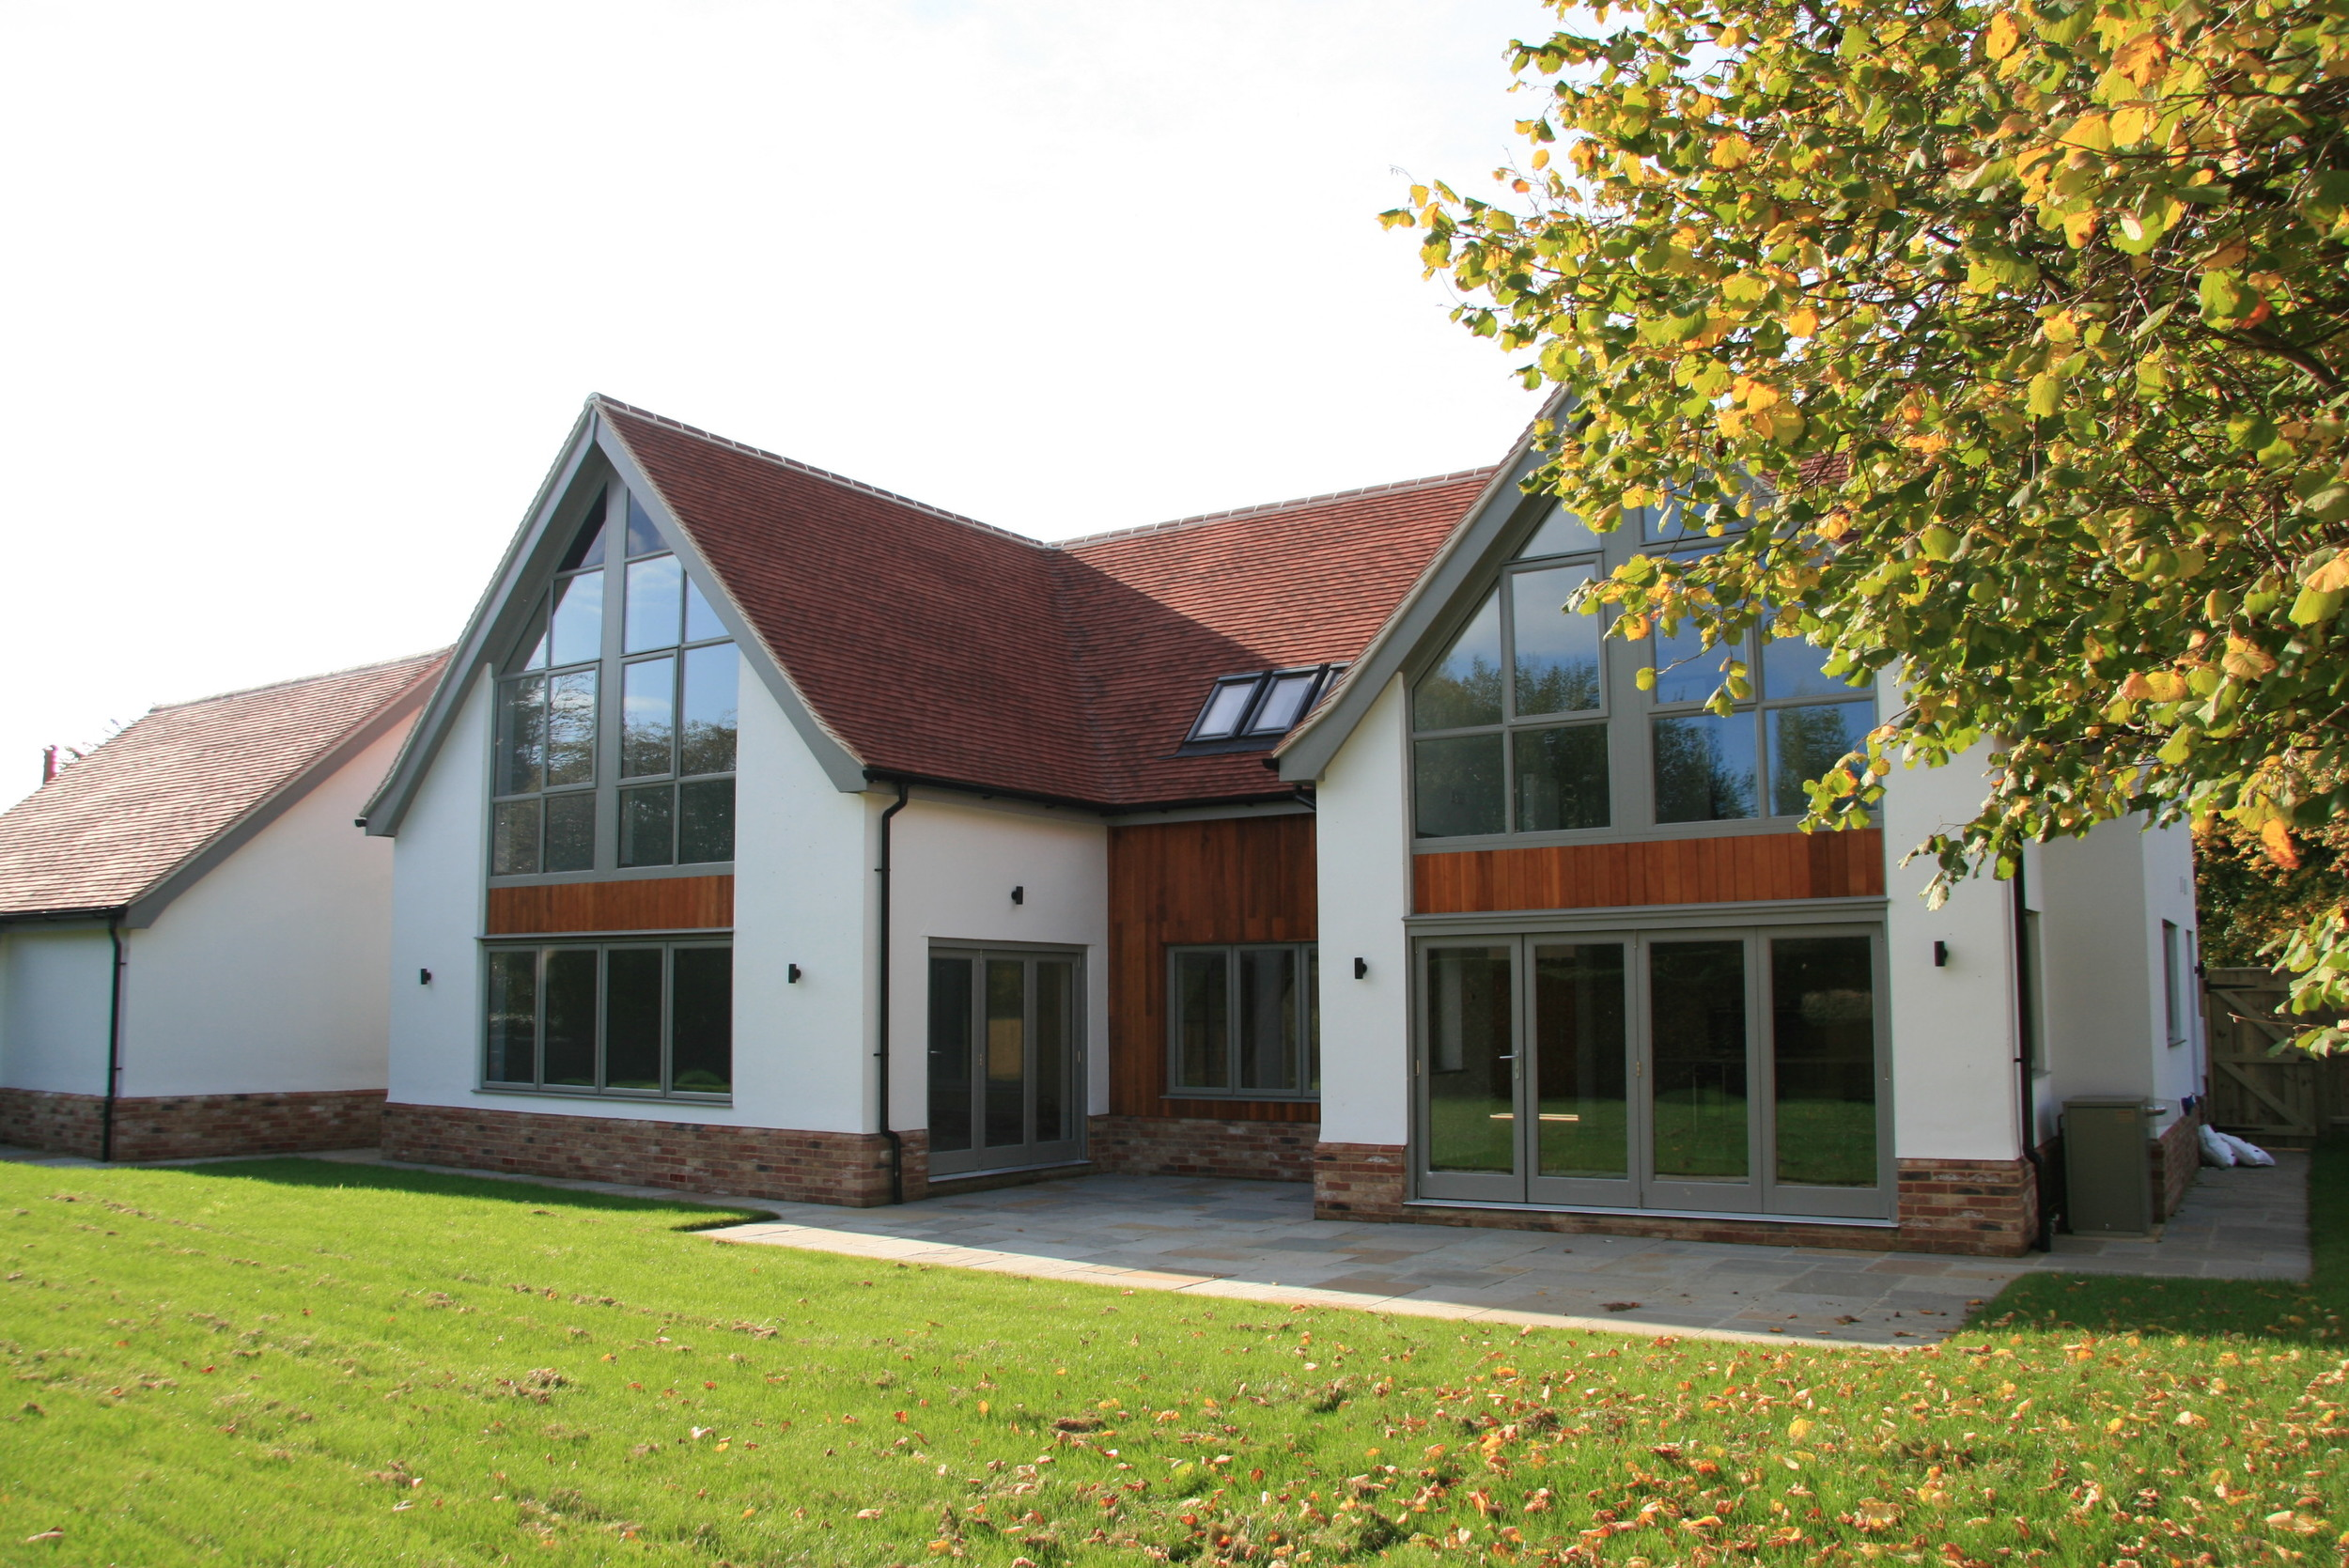 The large amount of apex glazing to the south allows lots of natural daylight into the property.